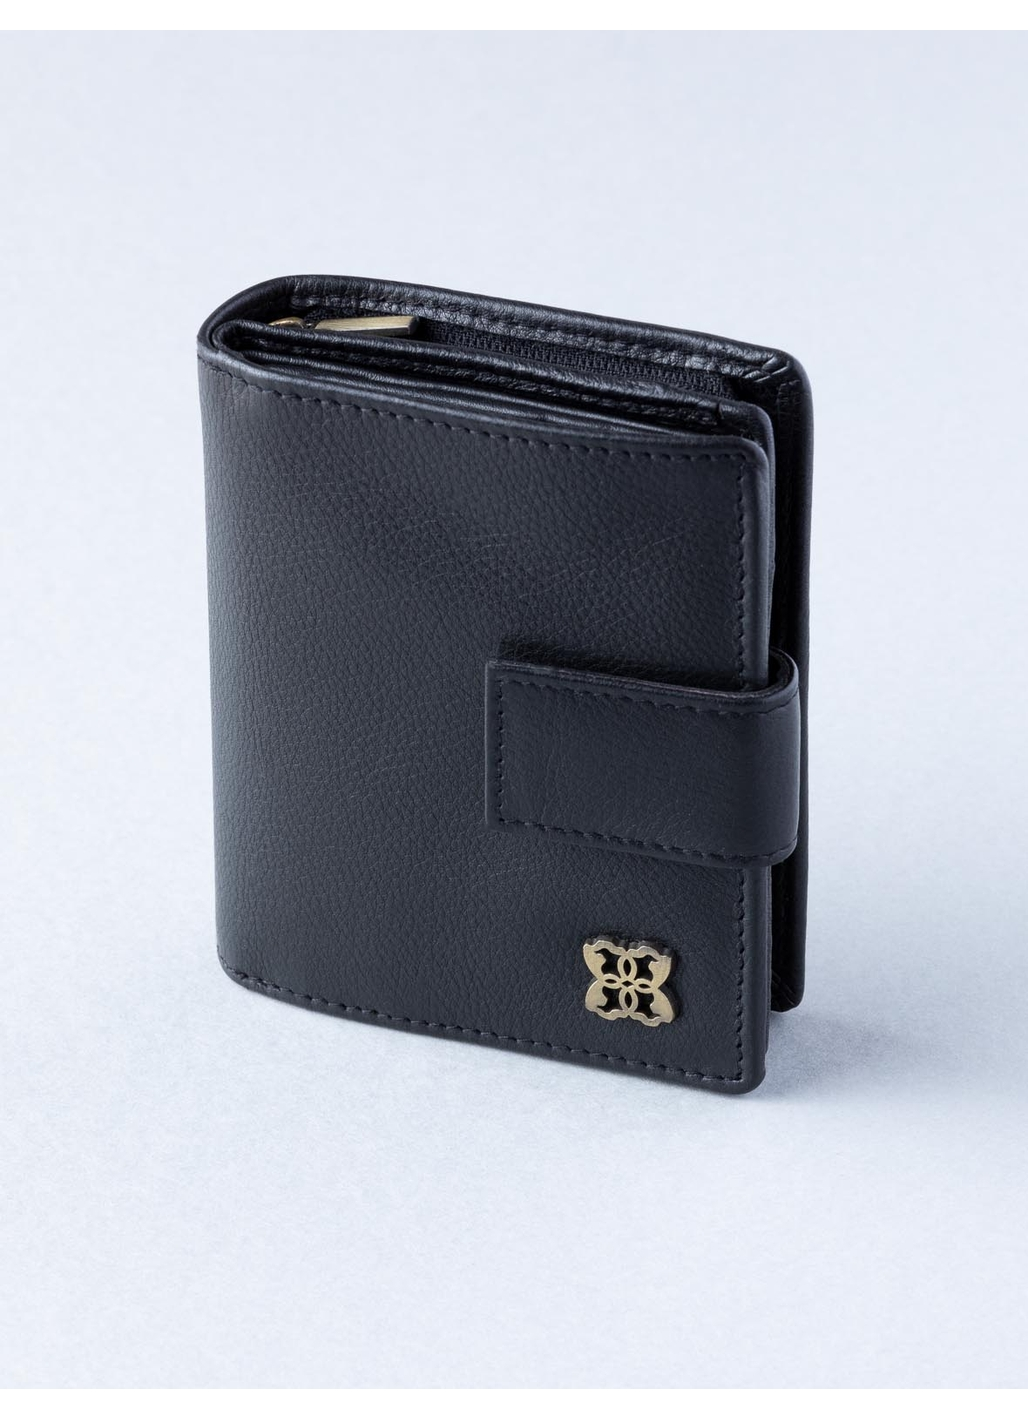 Rickerby 12cm Leather Purse in Black